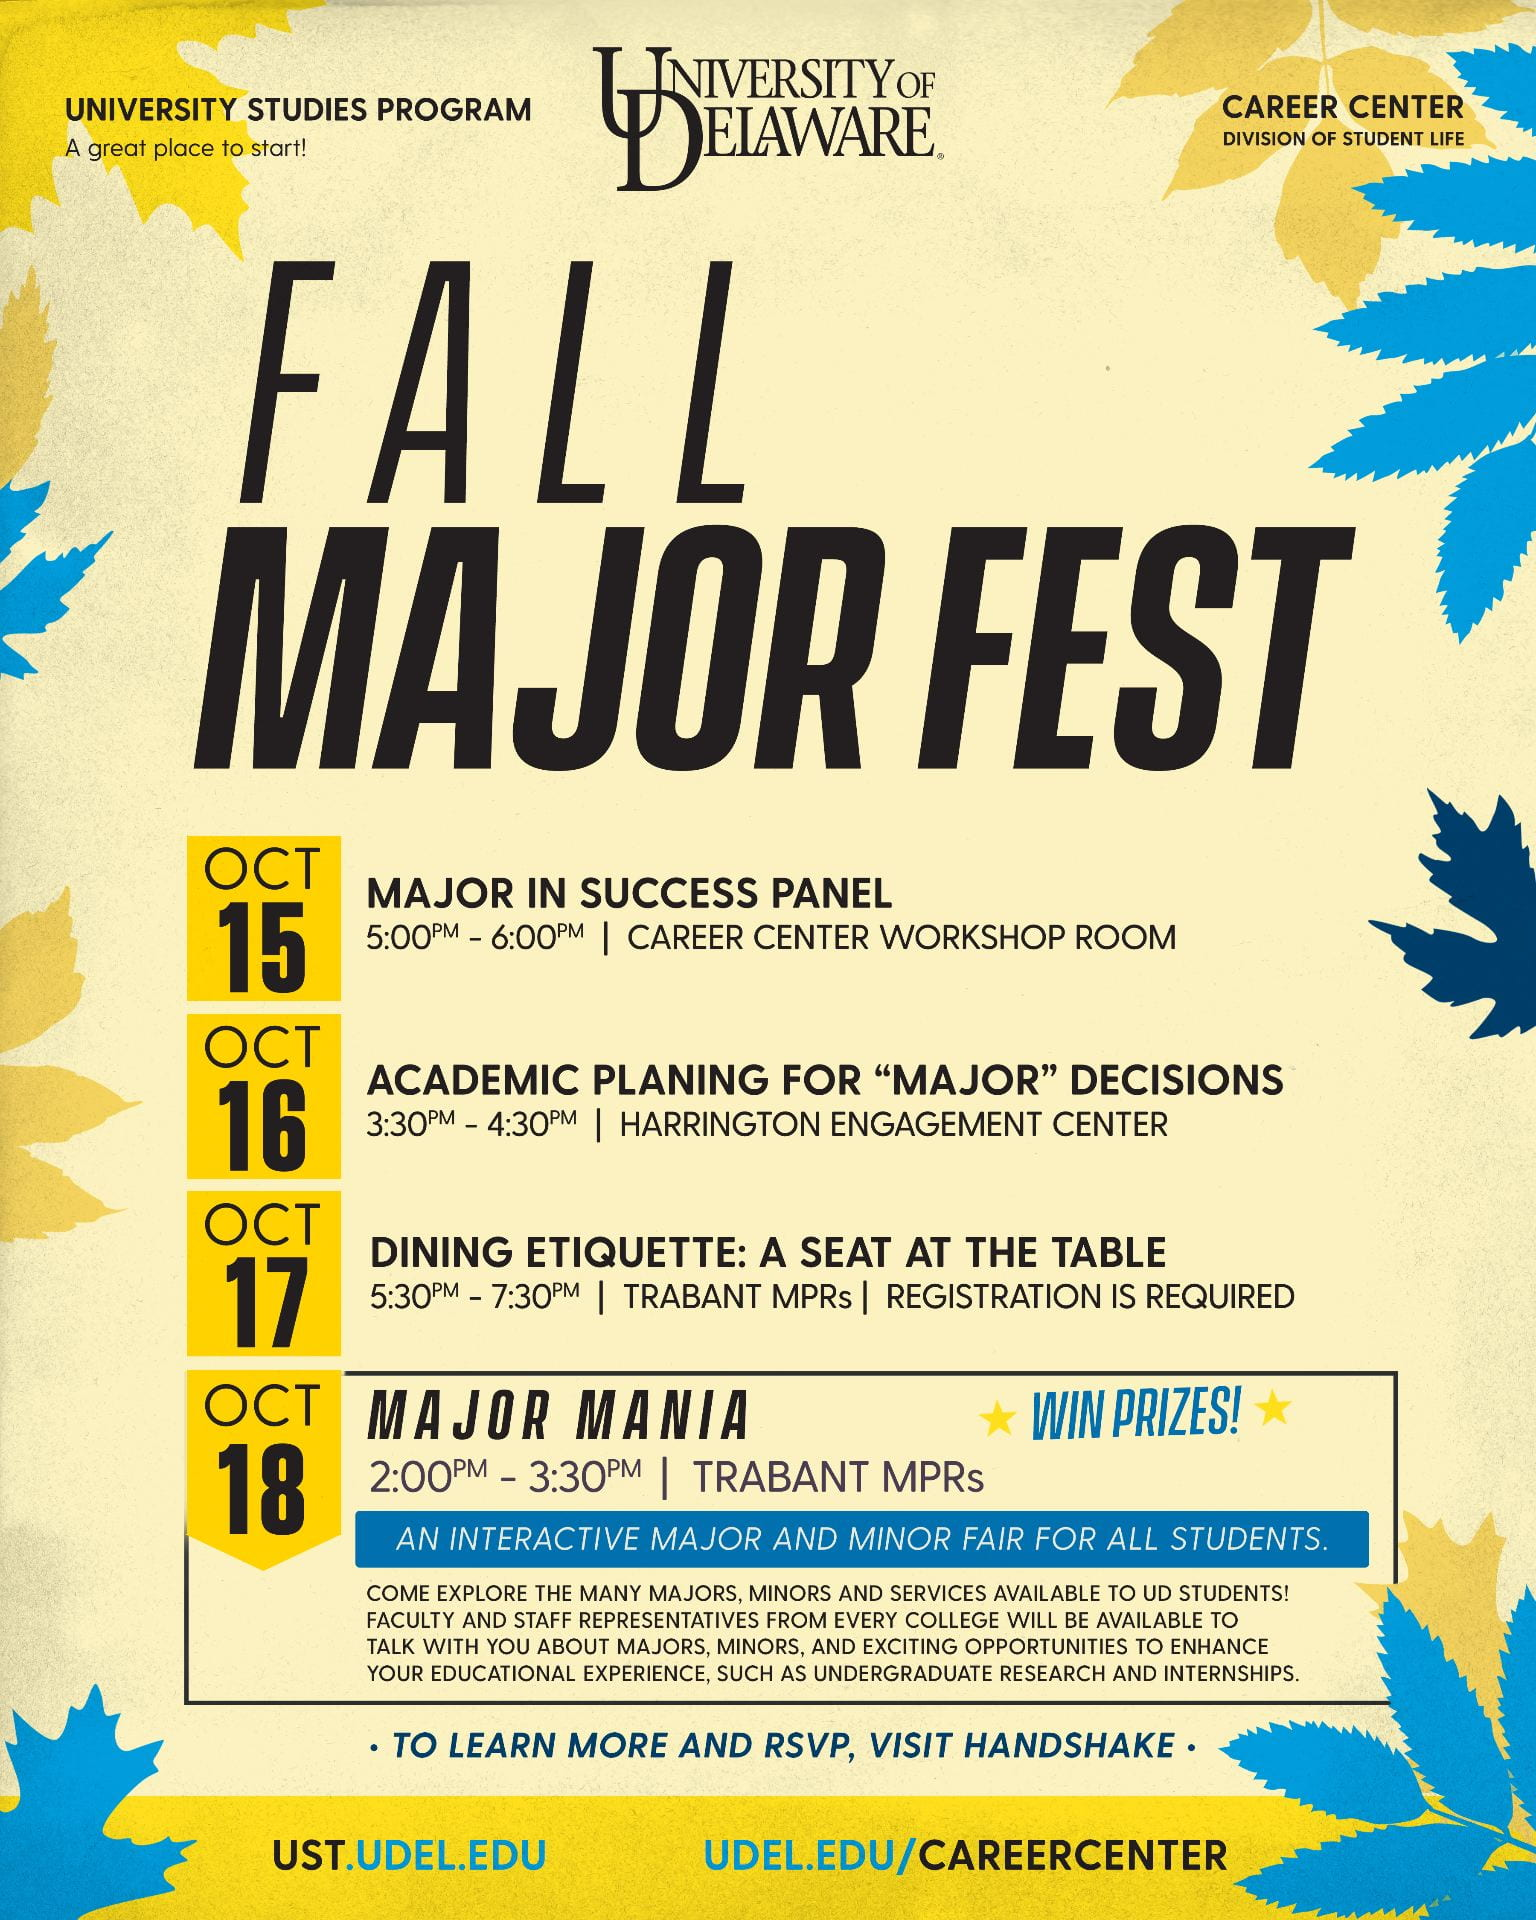 """Fall Major Fest: Oct 15 Major in Success Panel 5-6 PM, Career Center Workshop Room. Oct 16 Academic Planning for """"Major"""" Decisions, 3:30-4:30 PM, Harrington Engagement Center. Oct 17 Dining Etiquette: a Seat at the Table 5:30-7:30 PM, Trabant Multipurpose Rooms, Registration is Required. Oct 18 Major Mania 2-3:30 PM, Trabant Multipurpose Rooms, an interactive major and minor fair for all students, Win prizes! Come explore the many majors, minors, and services available to UD students! Faculty and staff representatives from every college will be available to talk with you about majors, minors, and exciting opportunities to enhance your educational experience, such as undergraduate research and internships. To learn more and rsvp, visit Handshake. ust.udel.edu. udel.edu/careercenter"""